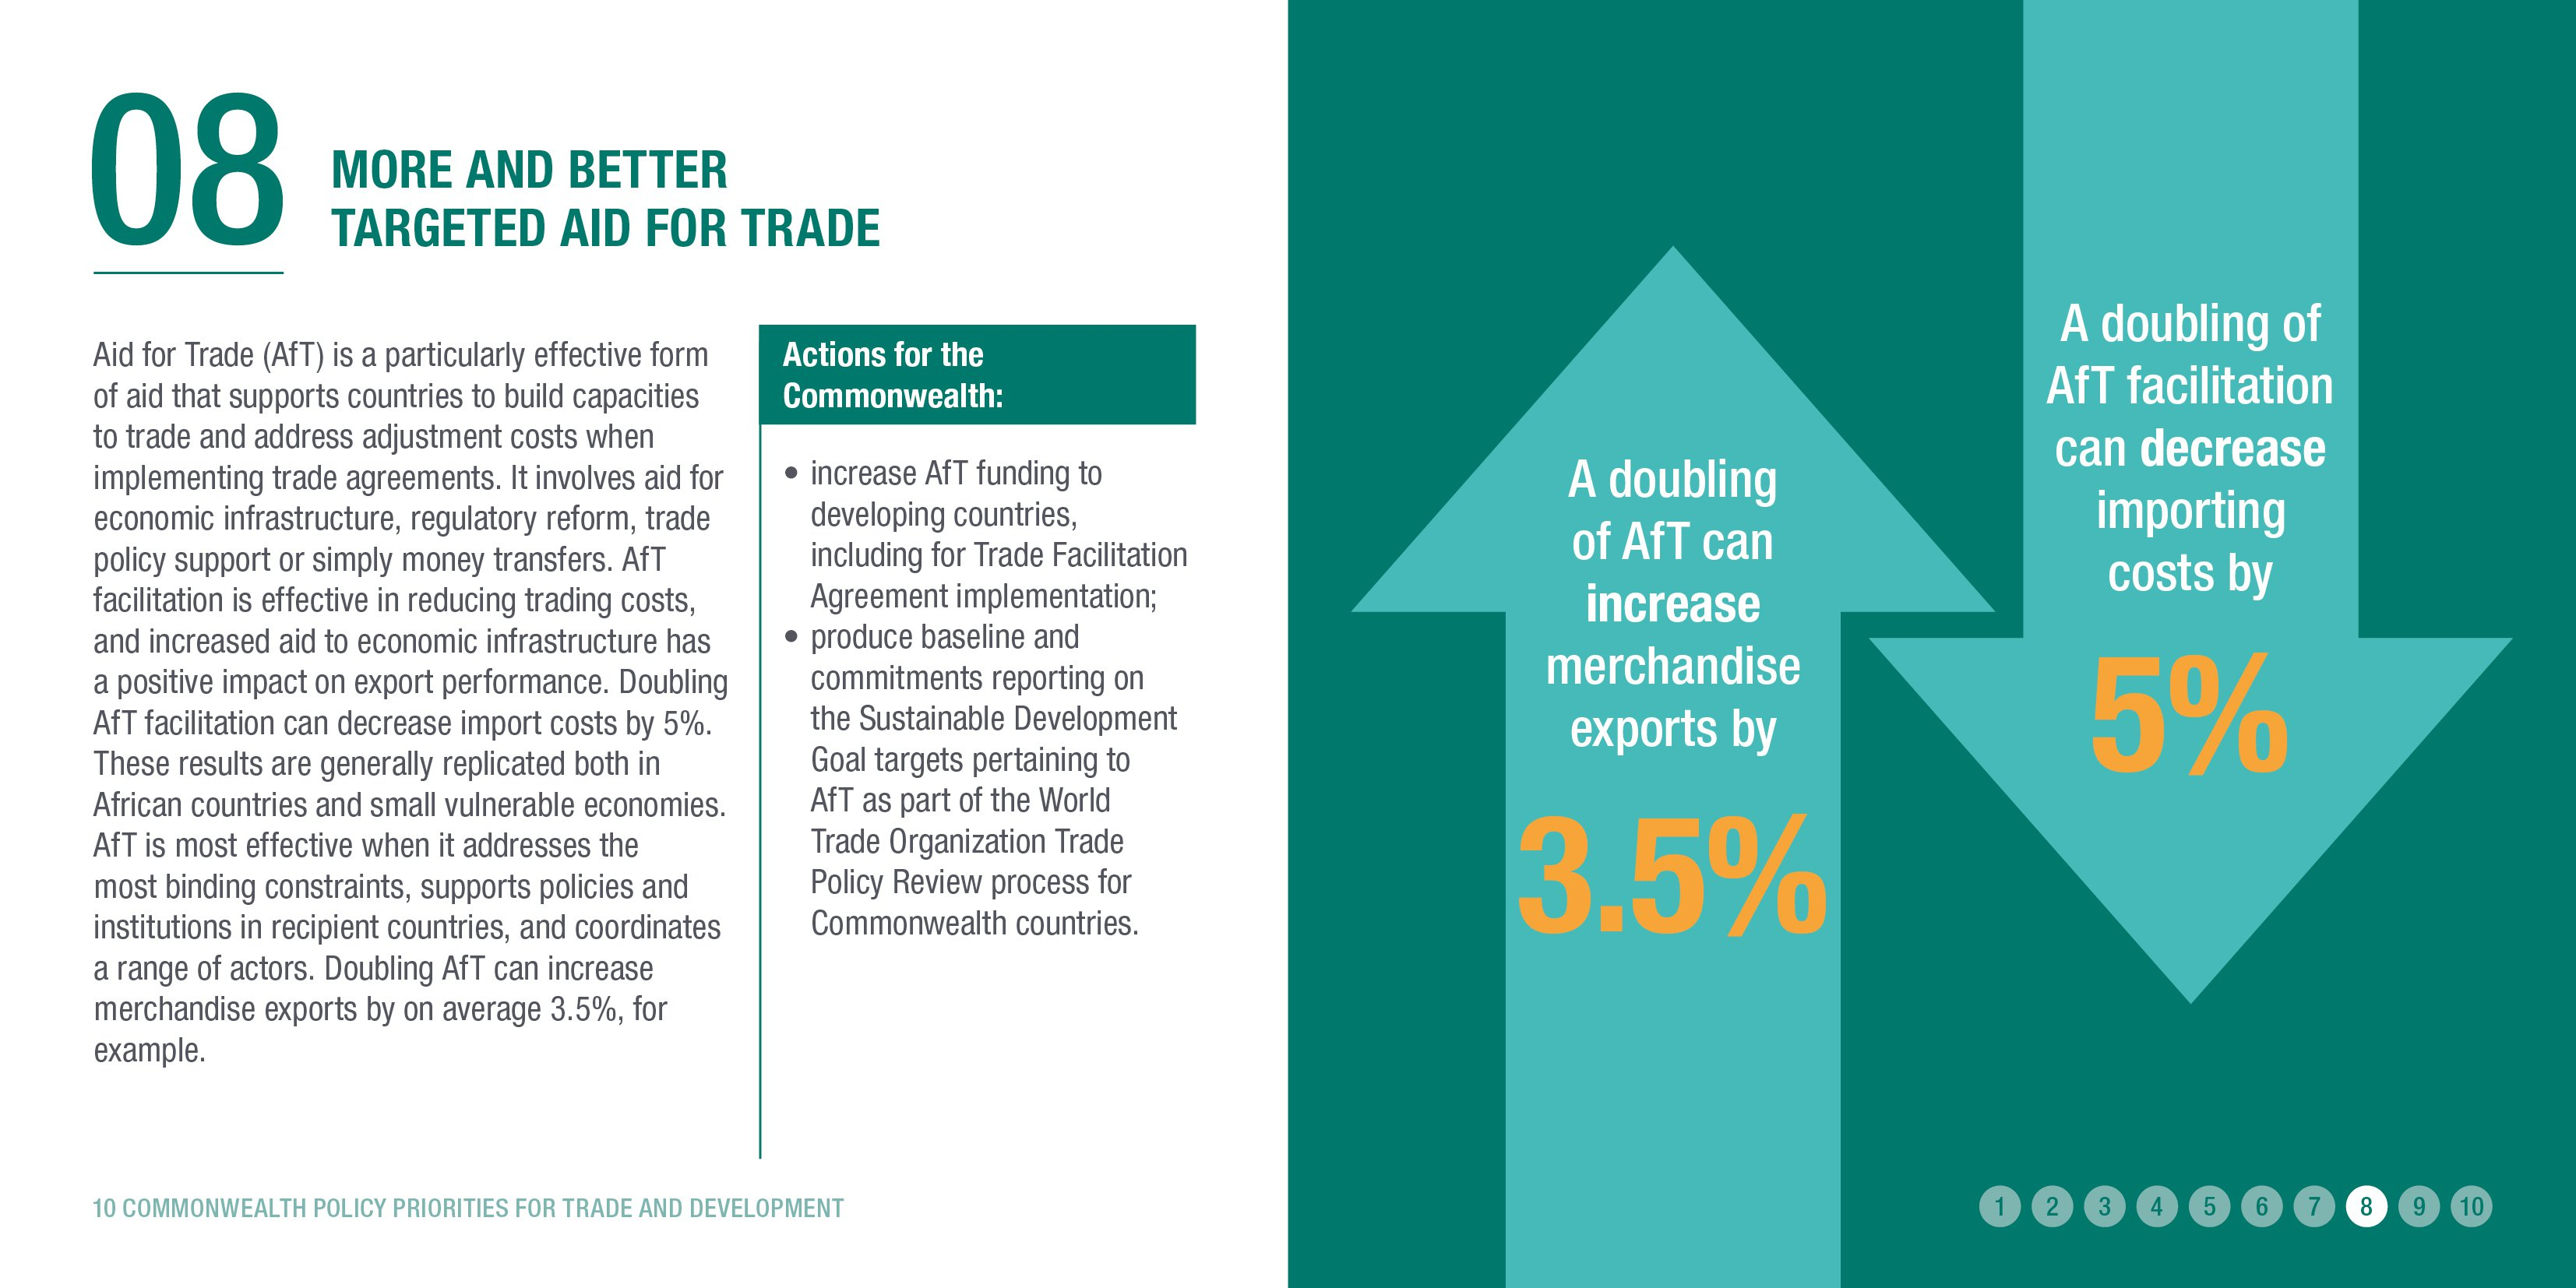 More and better targeted Aid for Trade